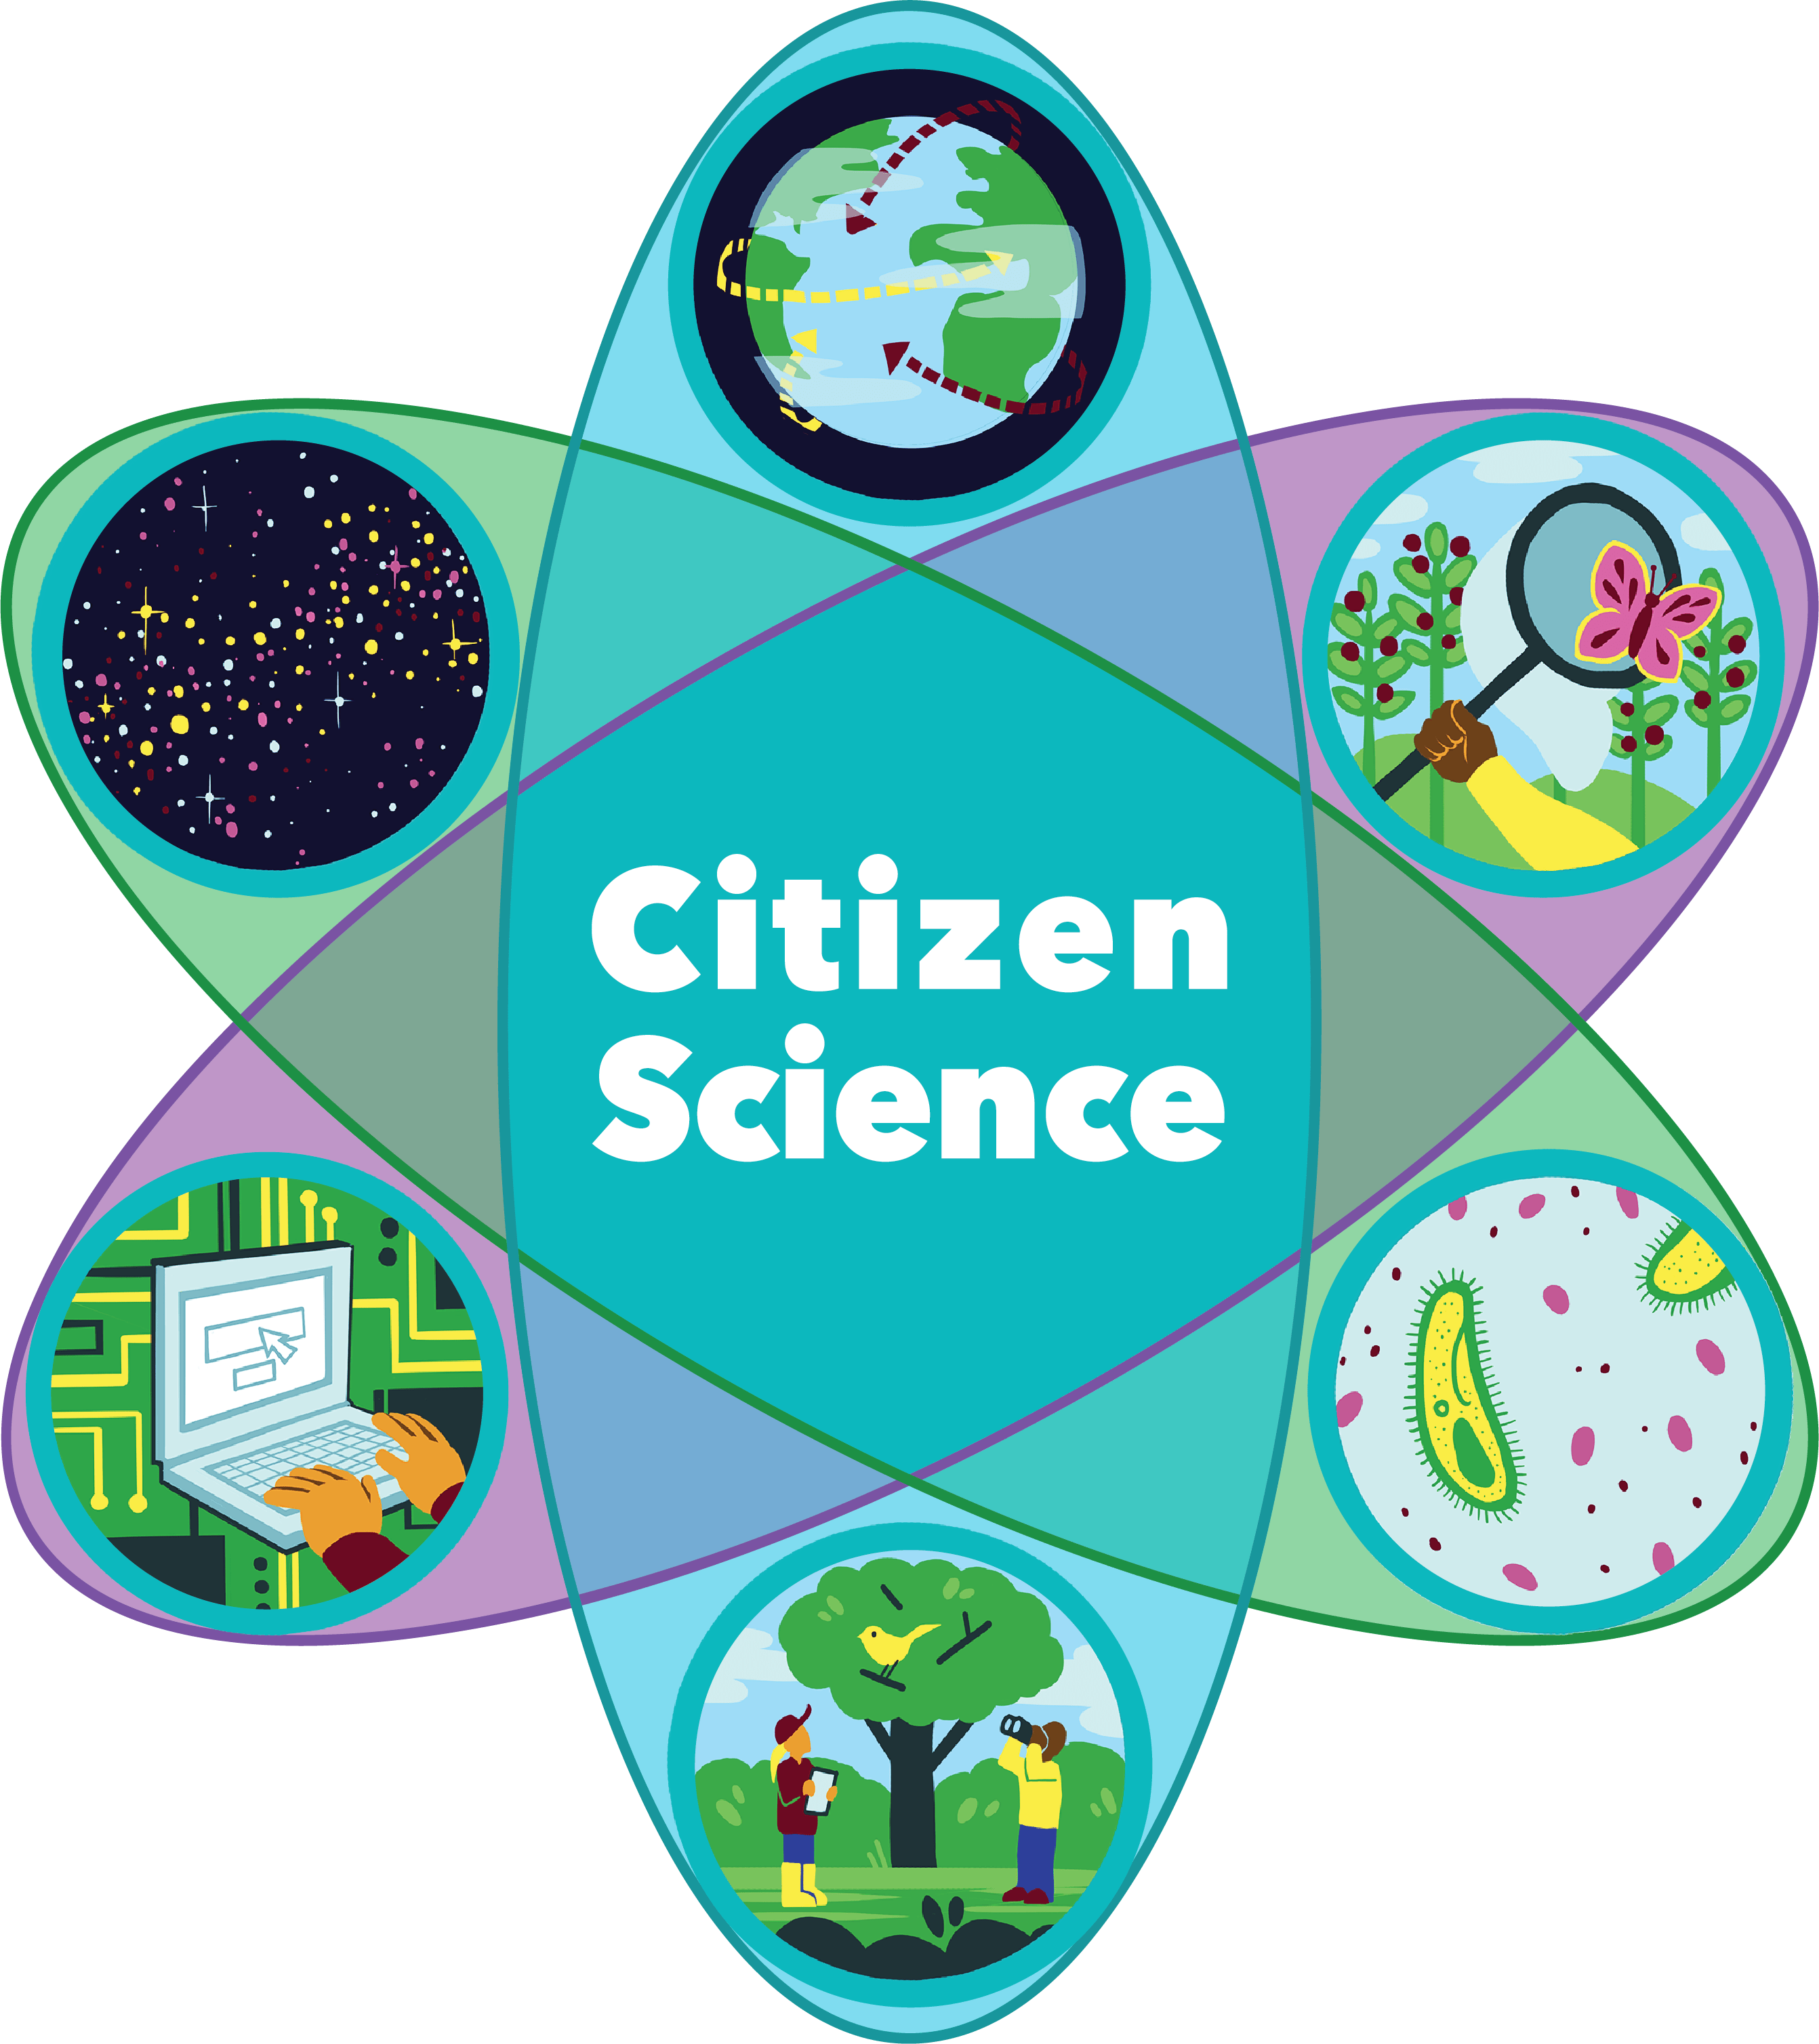 Learn How To Be a Citizen Scientist!